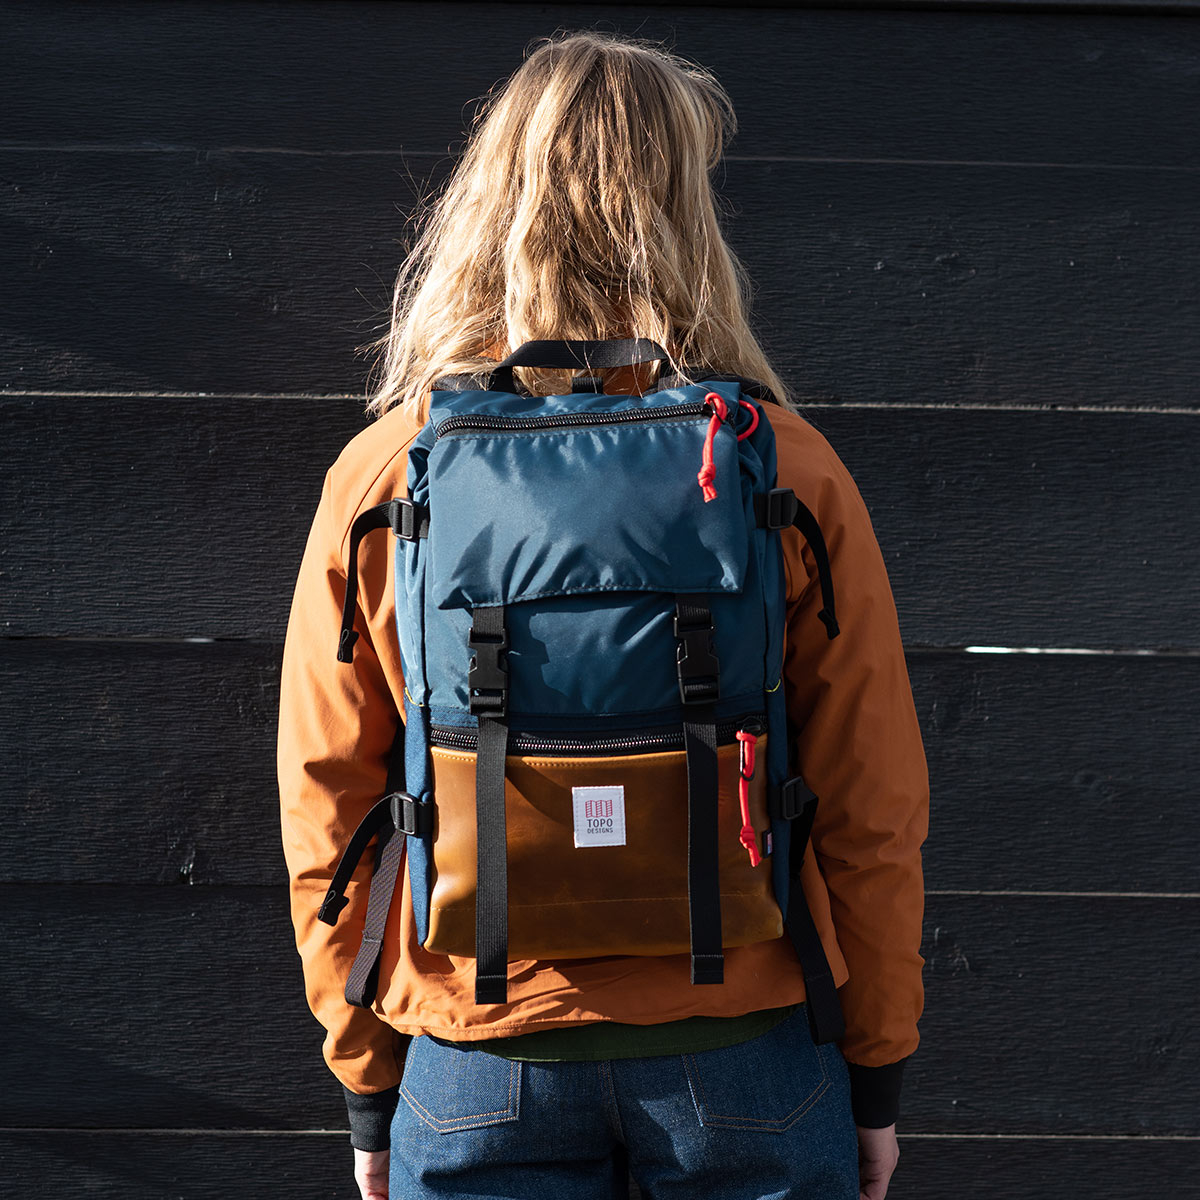 Topo Designs Rover Pack Heritage Navy/Brown Leather, durable, lightweight and water-resistant pack for daily use